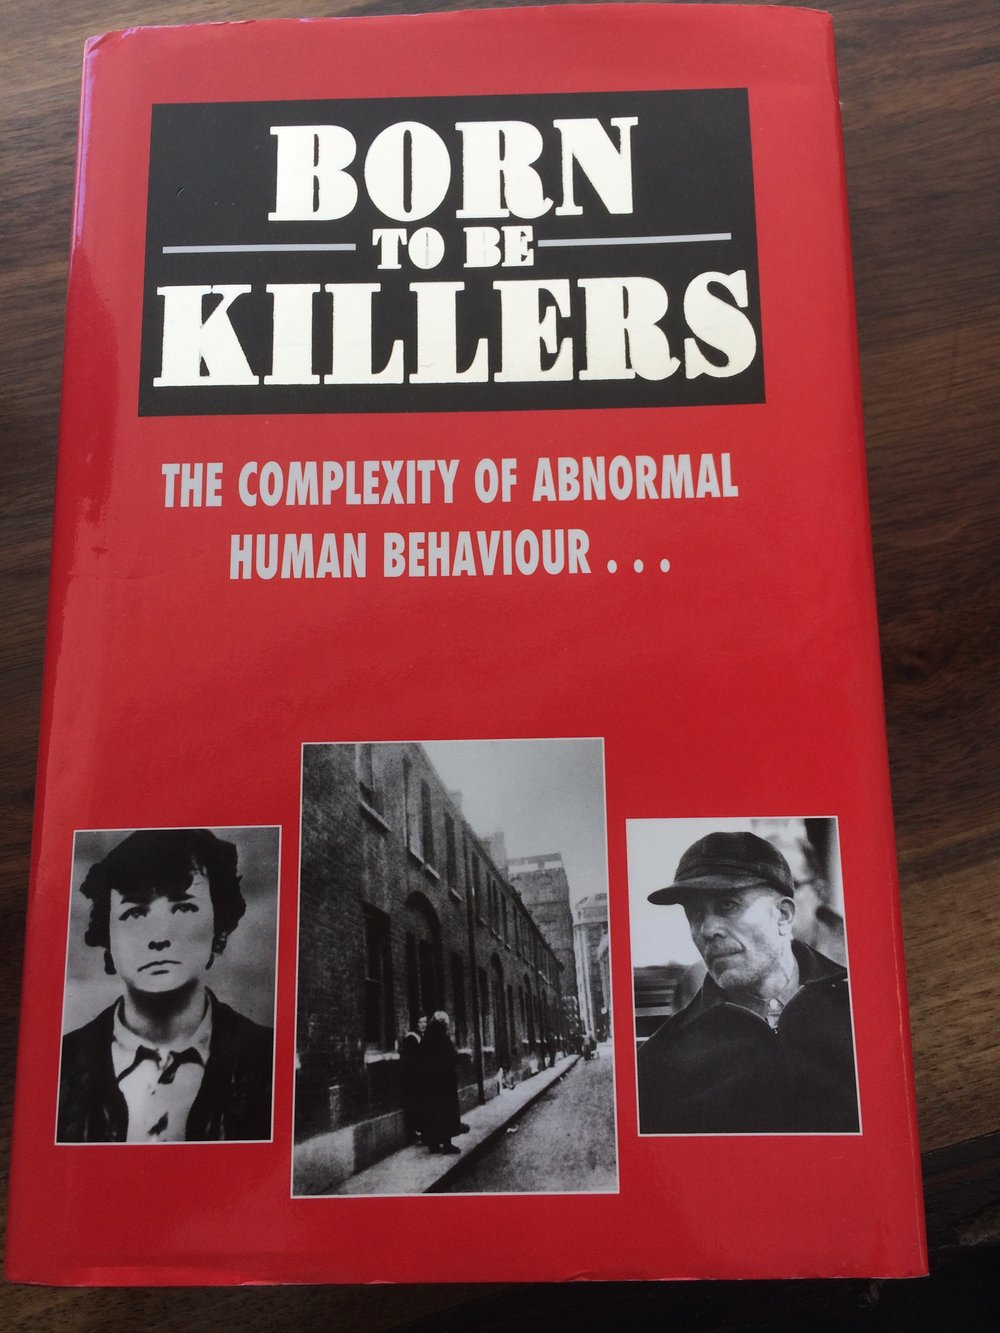 Born to be Killers  is still available here at Finch Books for $9.99. If you mention this blog post I'll give you 10% off. Remember there is only one copy available so first come, first serve.